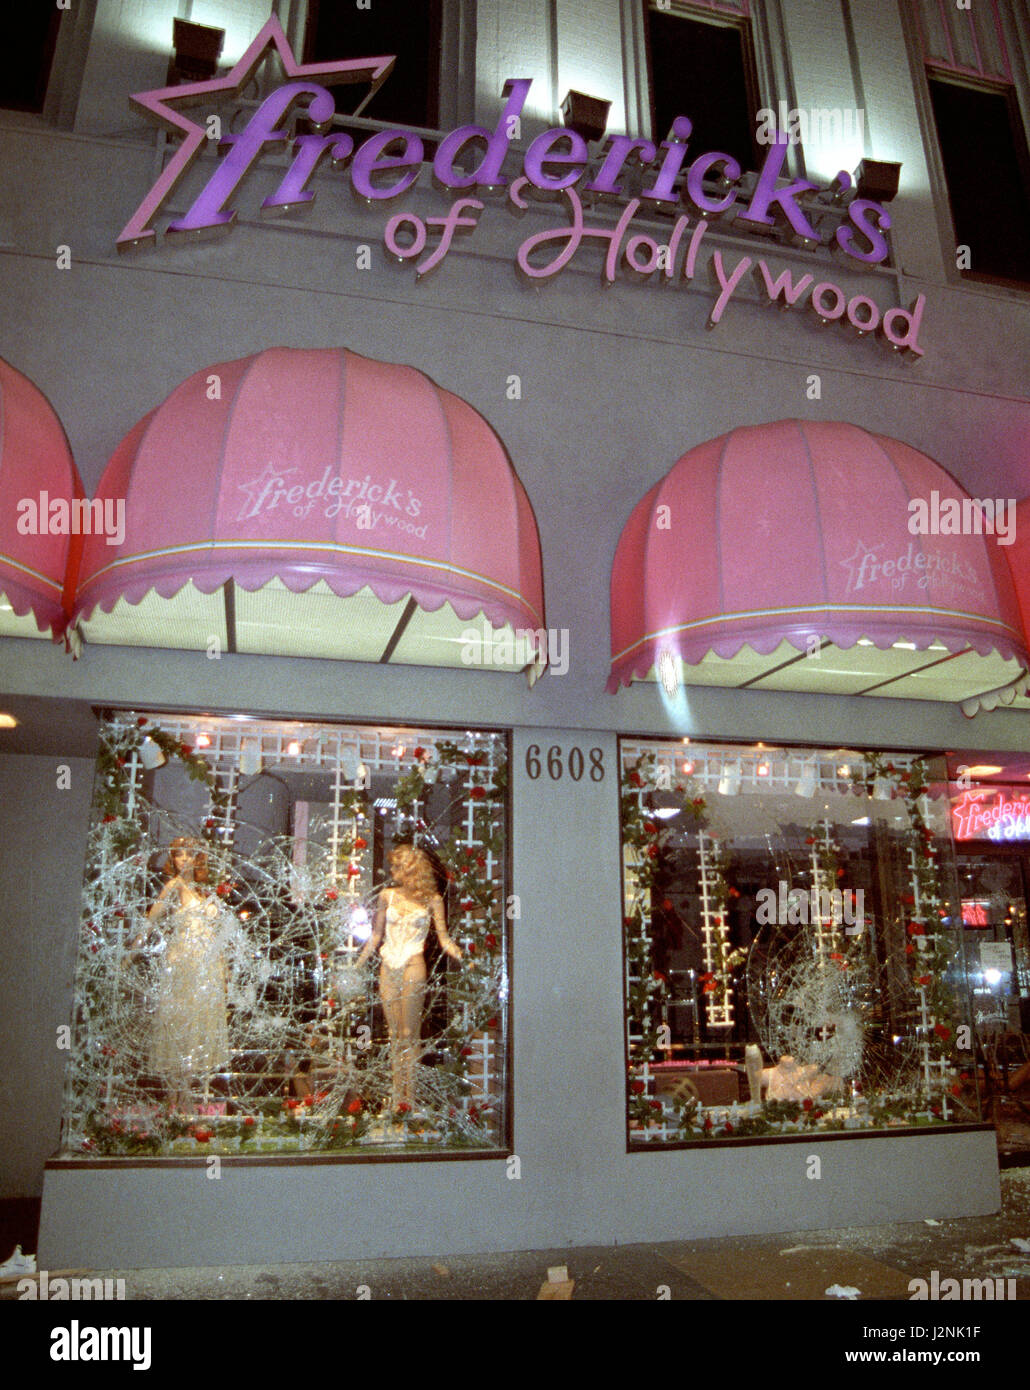 April 29/May 4 1992. Los Angeles CA. Famous Frederick's of Hollywood with broken windows. Coverage from the - Stock Image